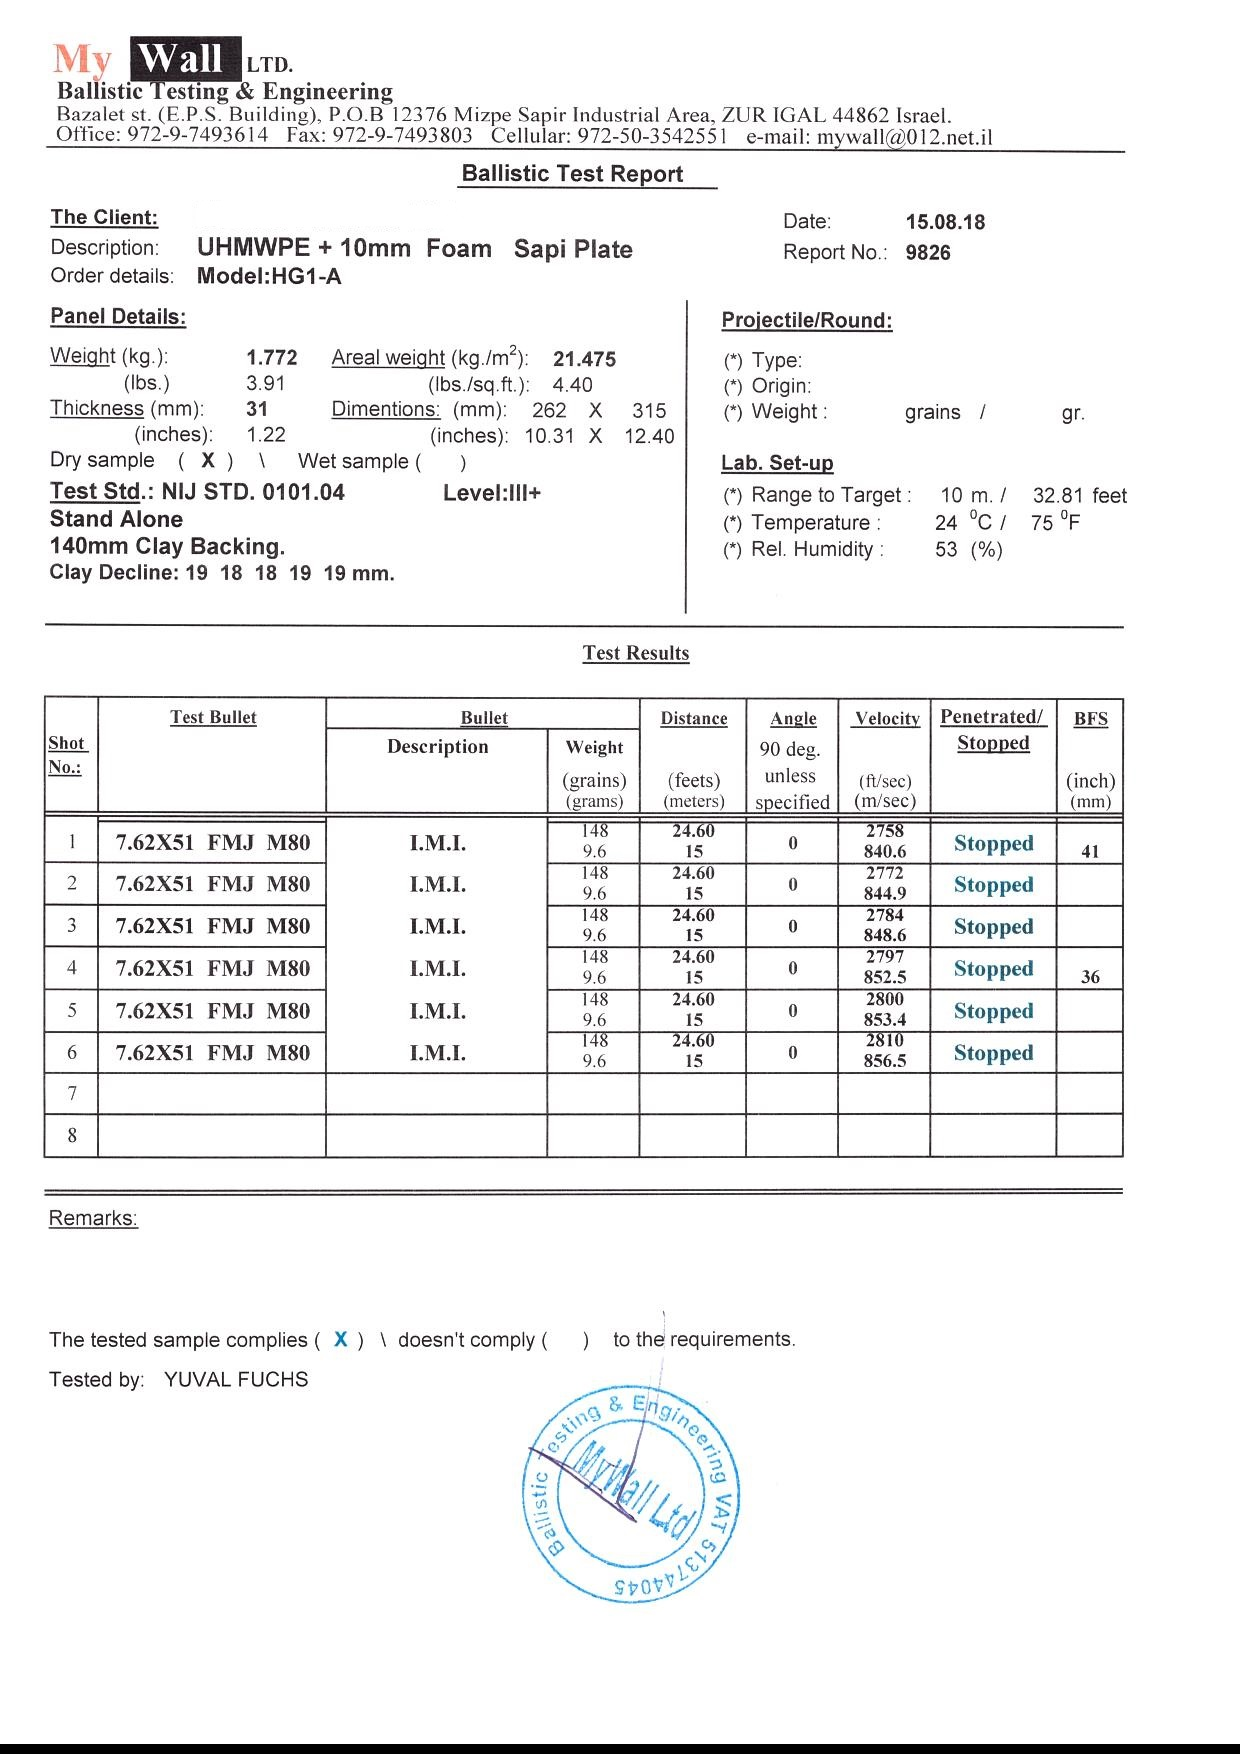 Level 3+ plate test results